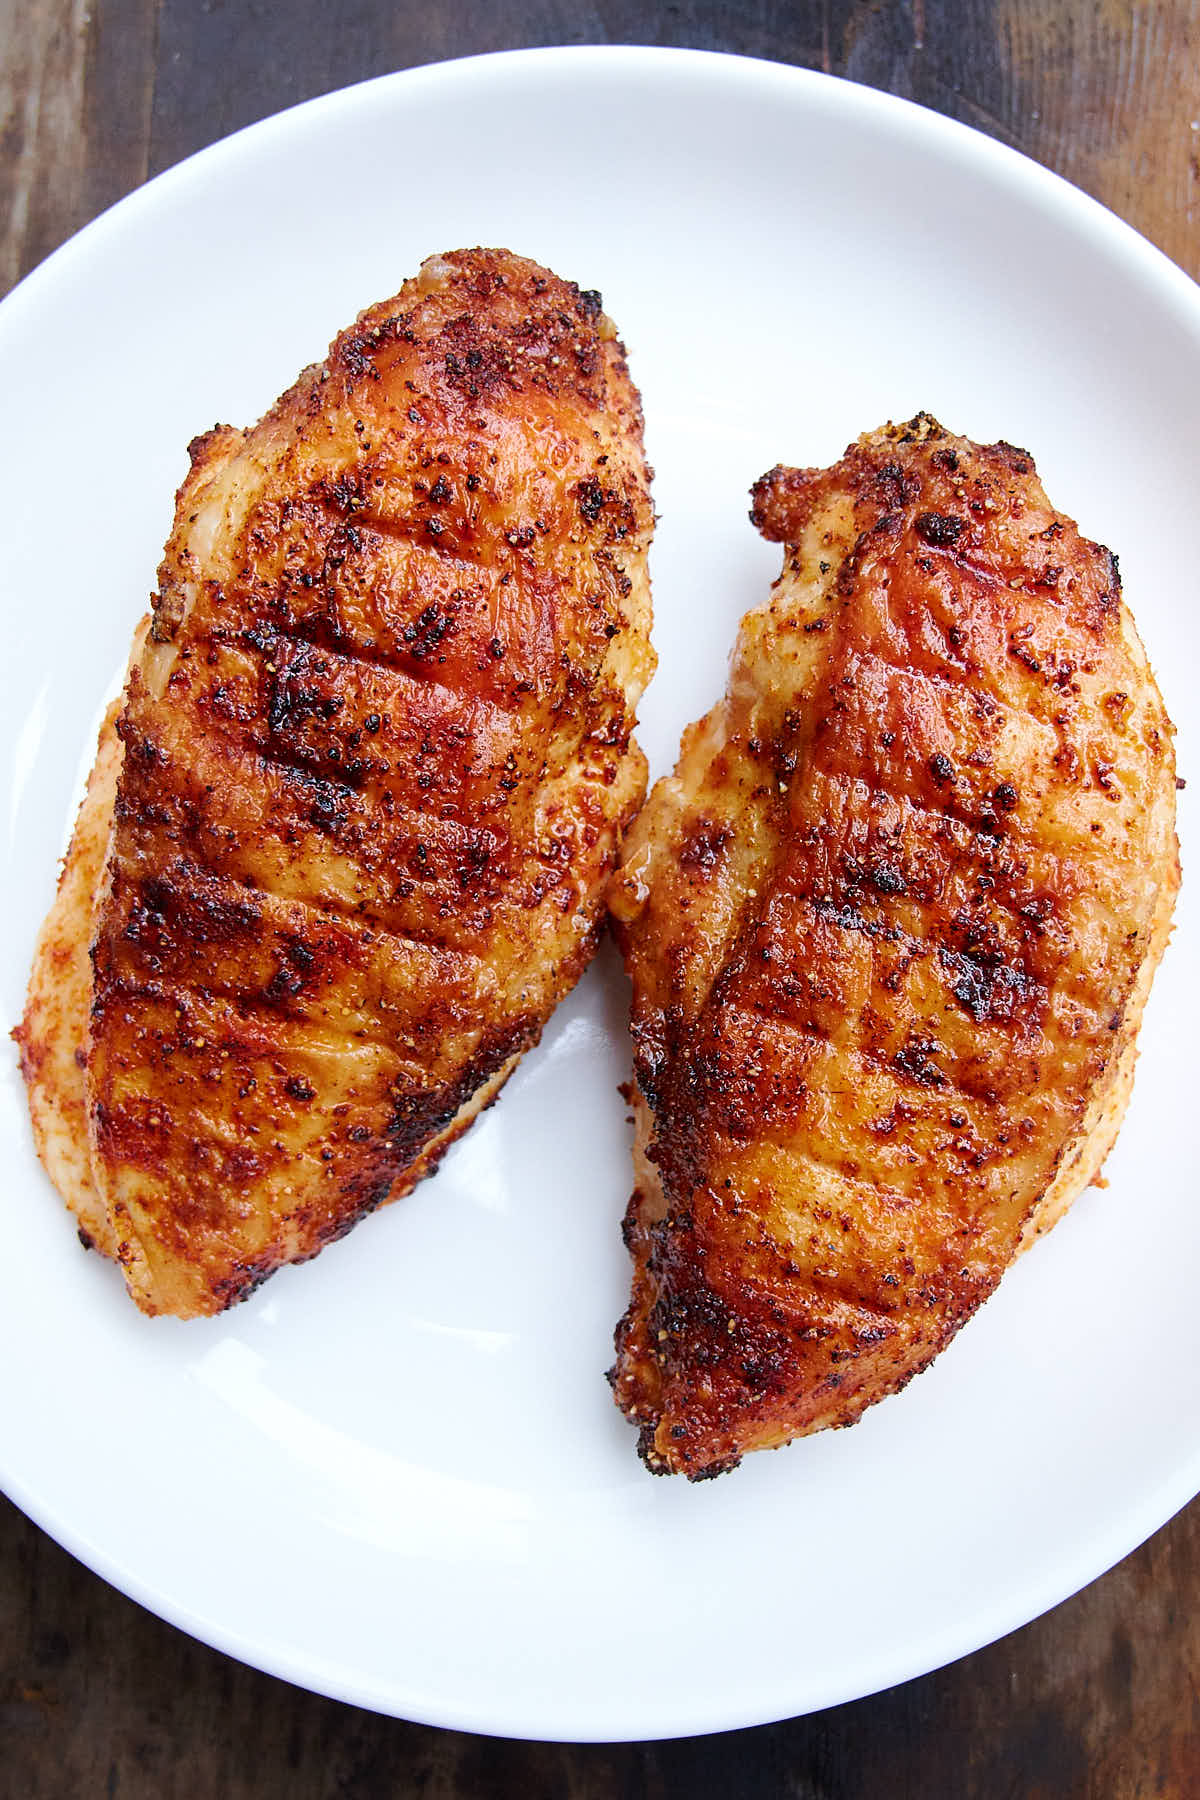 Deep golden-brown, crispy air fried chicken breasts on a white plate.